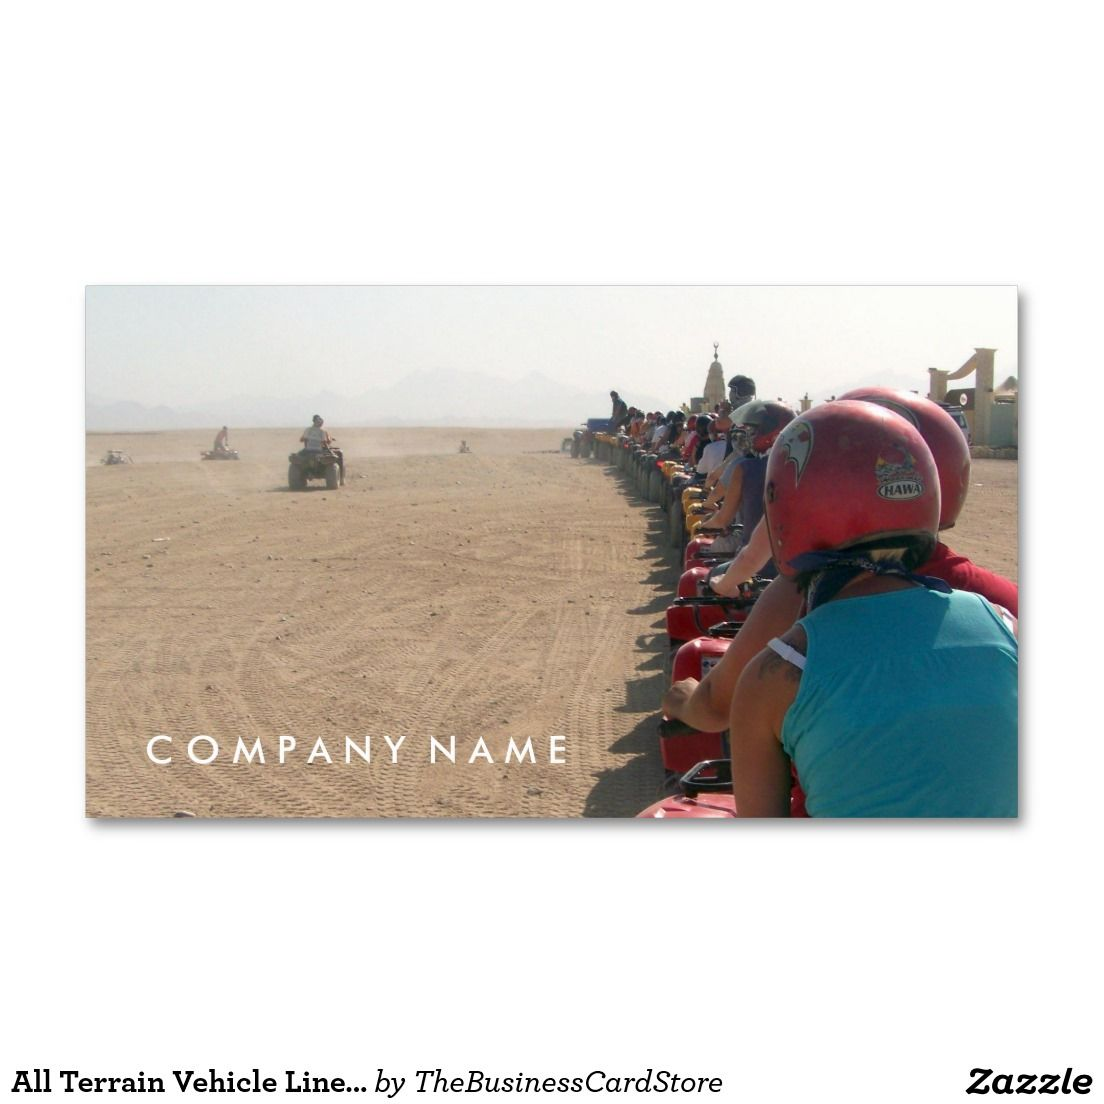 All Terrain Vehicle Line Up (ATV) Standard Business Card